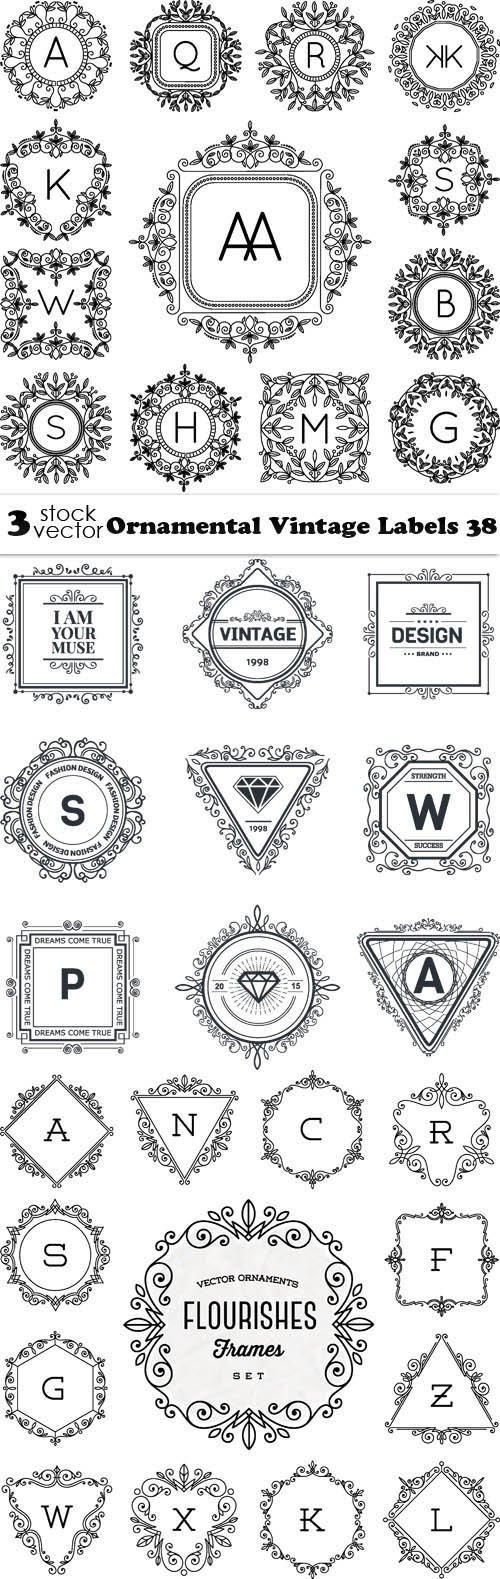 Vectors - Ornamental Vintage Labels 38